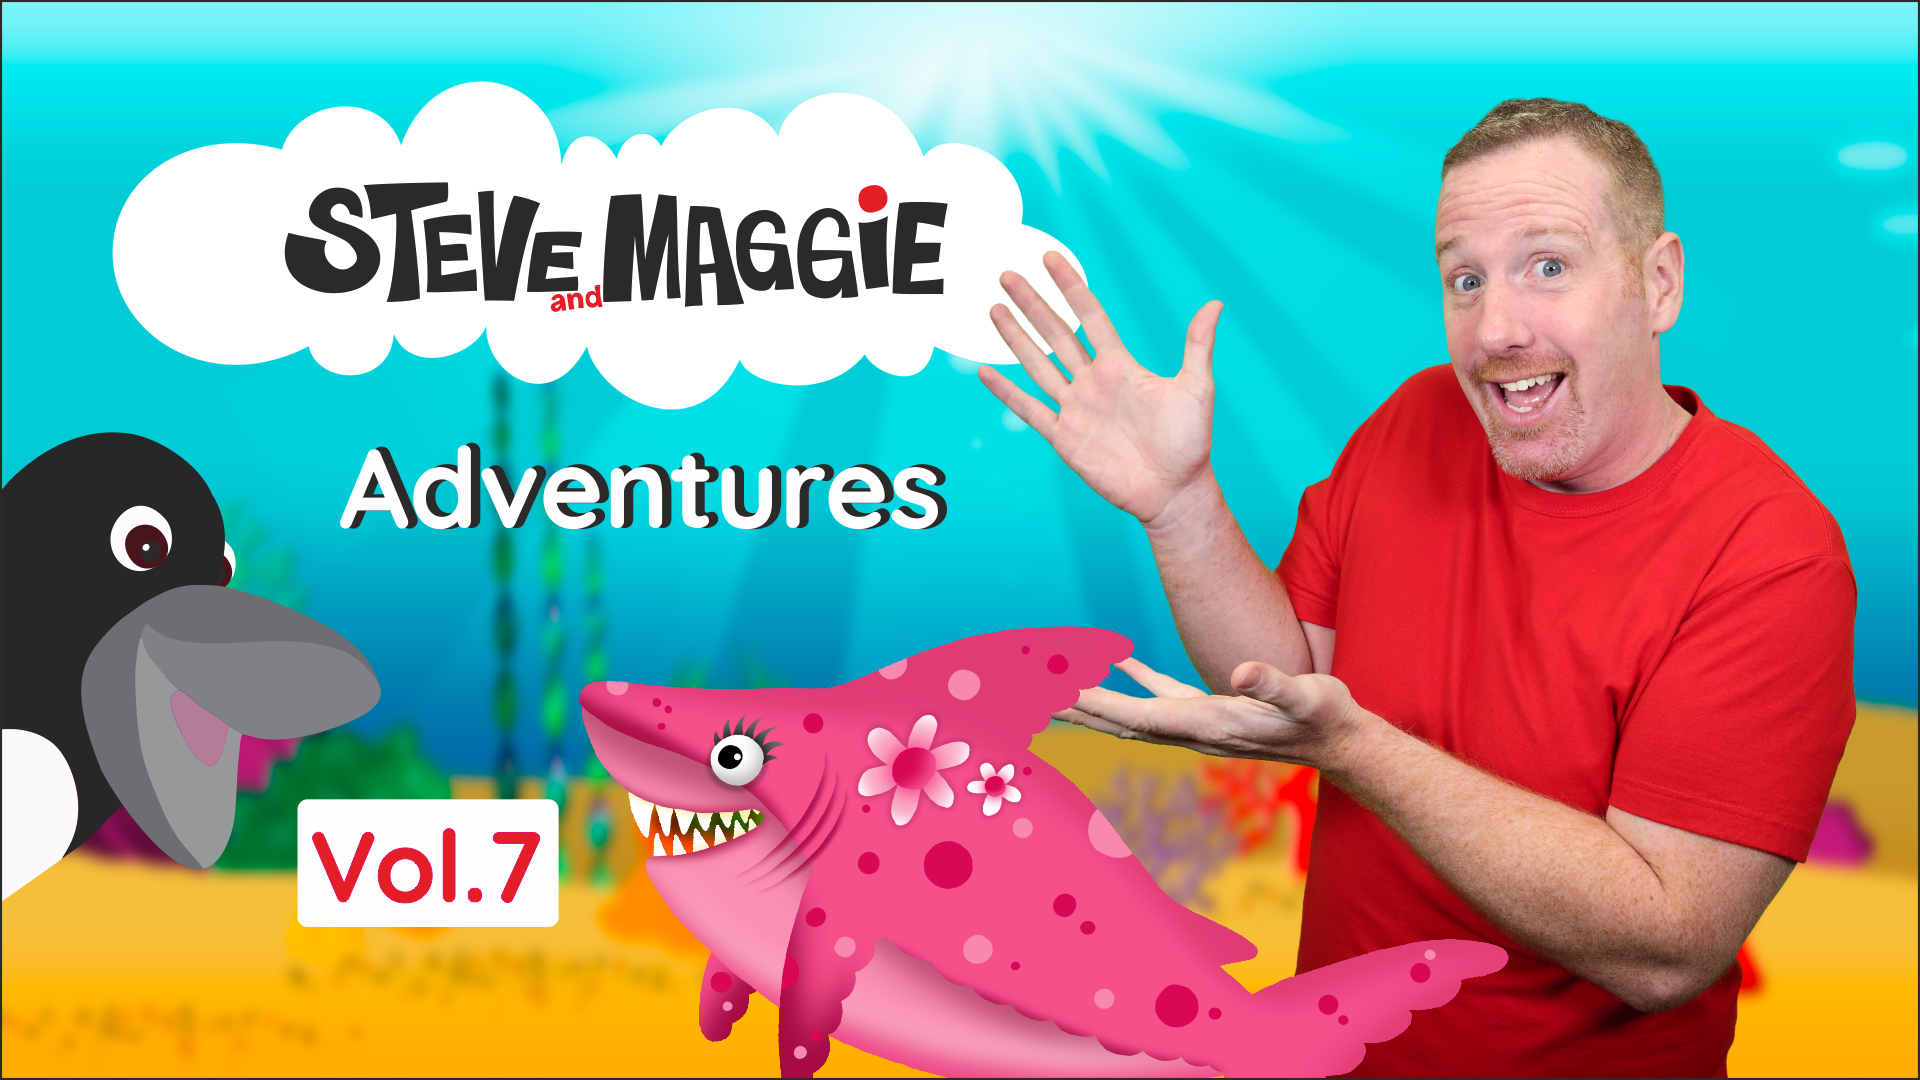 Steve and Maggie - Adventures (Vol. 7)